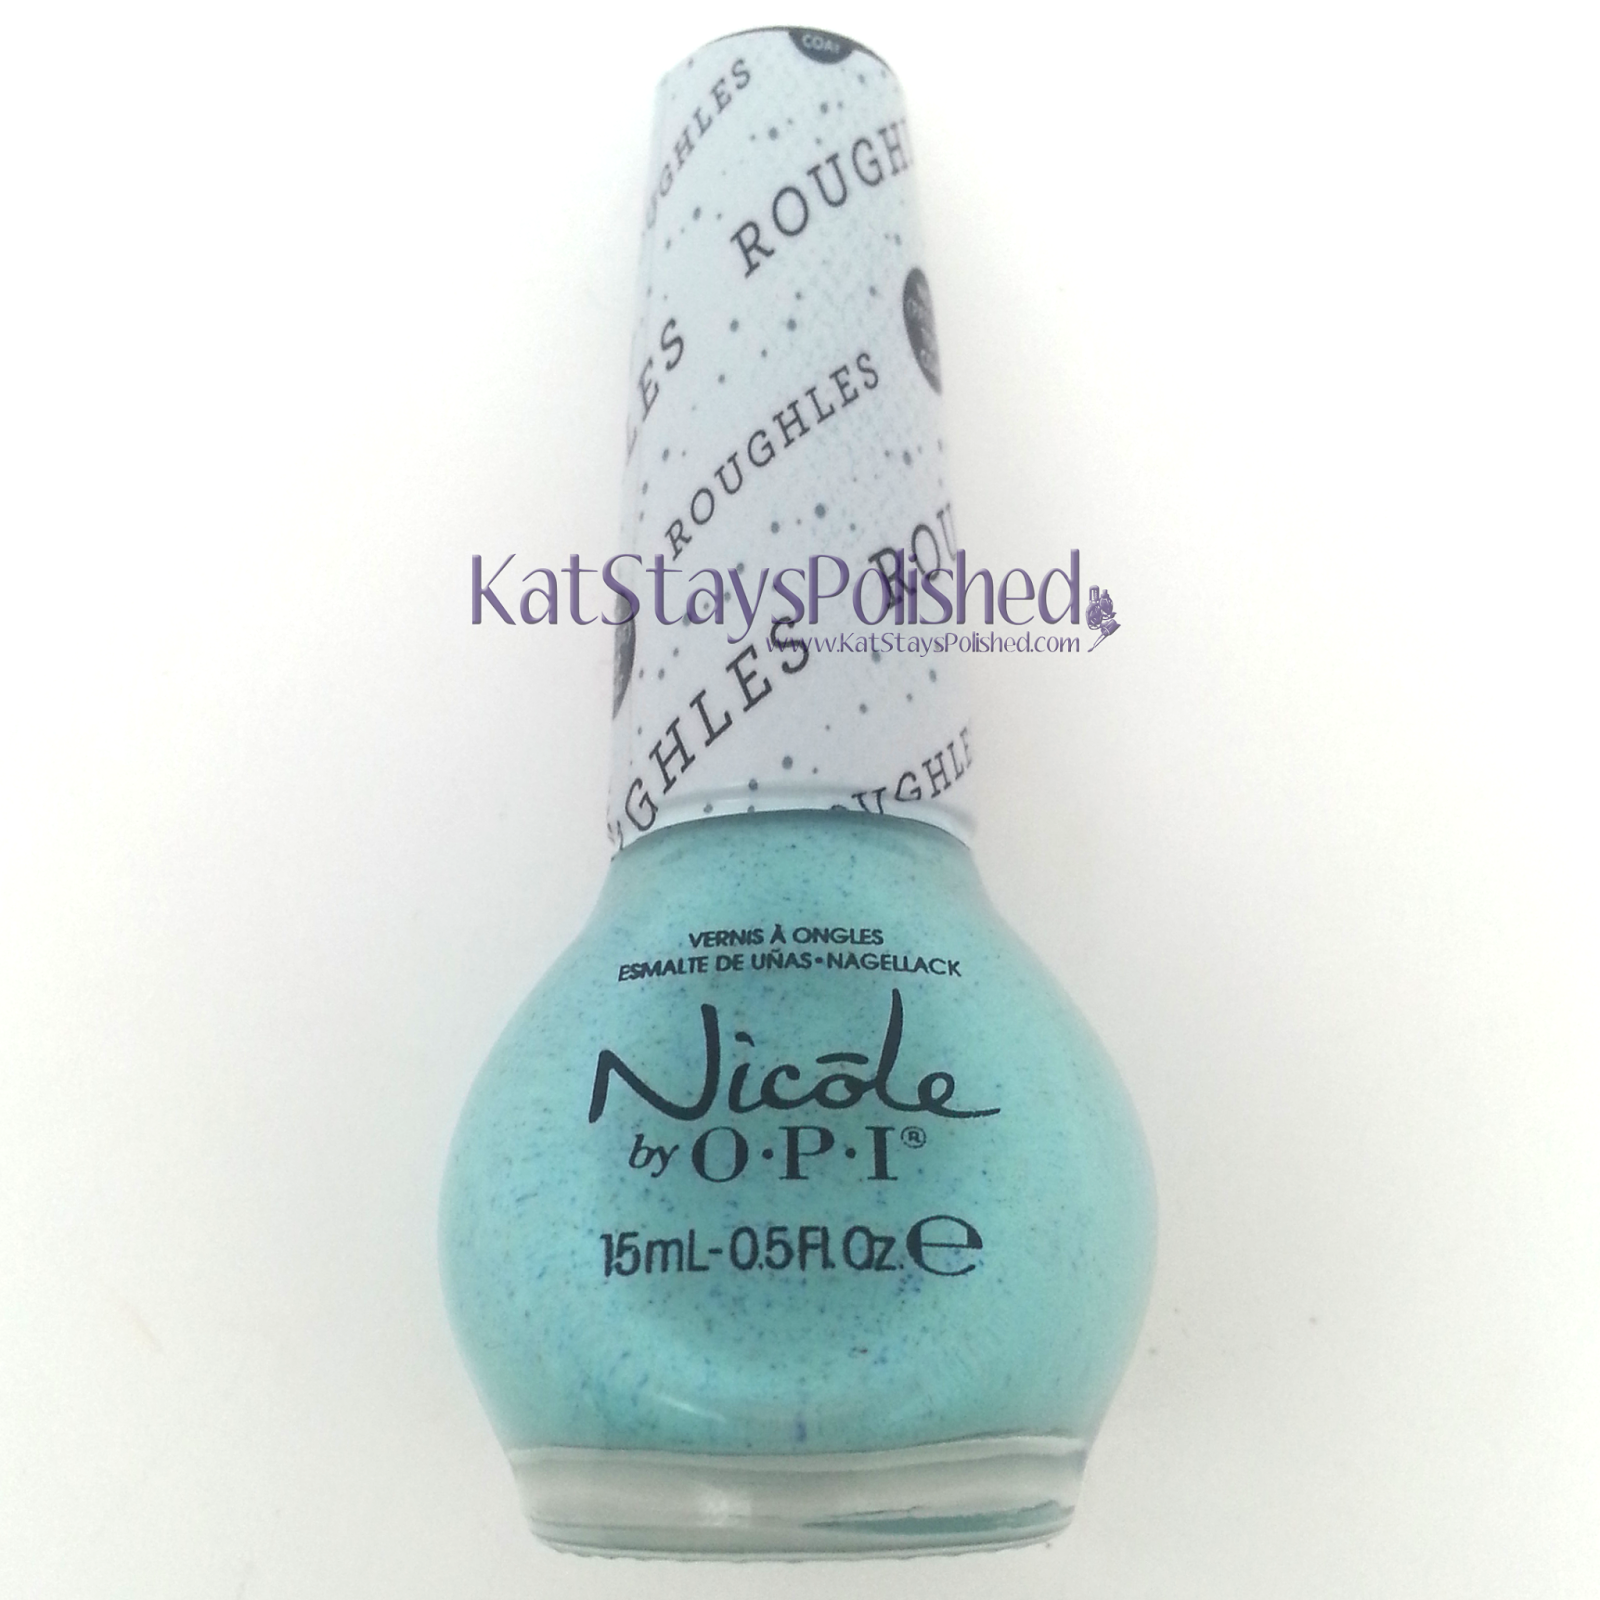 Ipsy Glam Bag: March 2014 - Nicole by OPI Roughles - On What Grounds | Kat Stays Polished